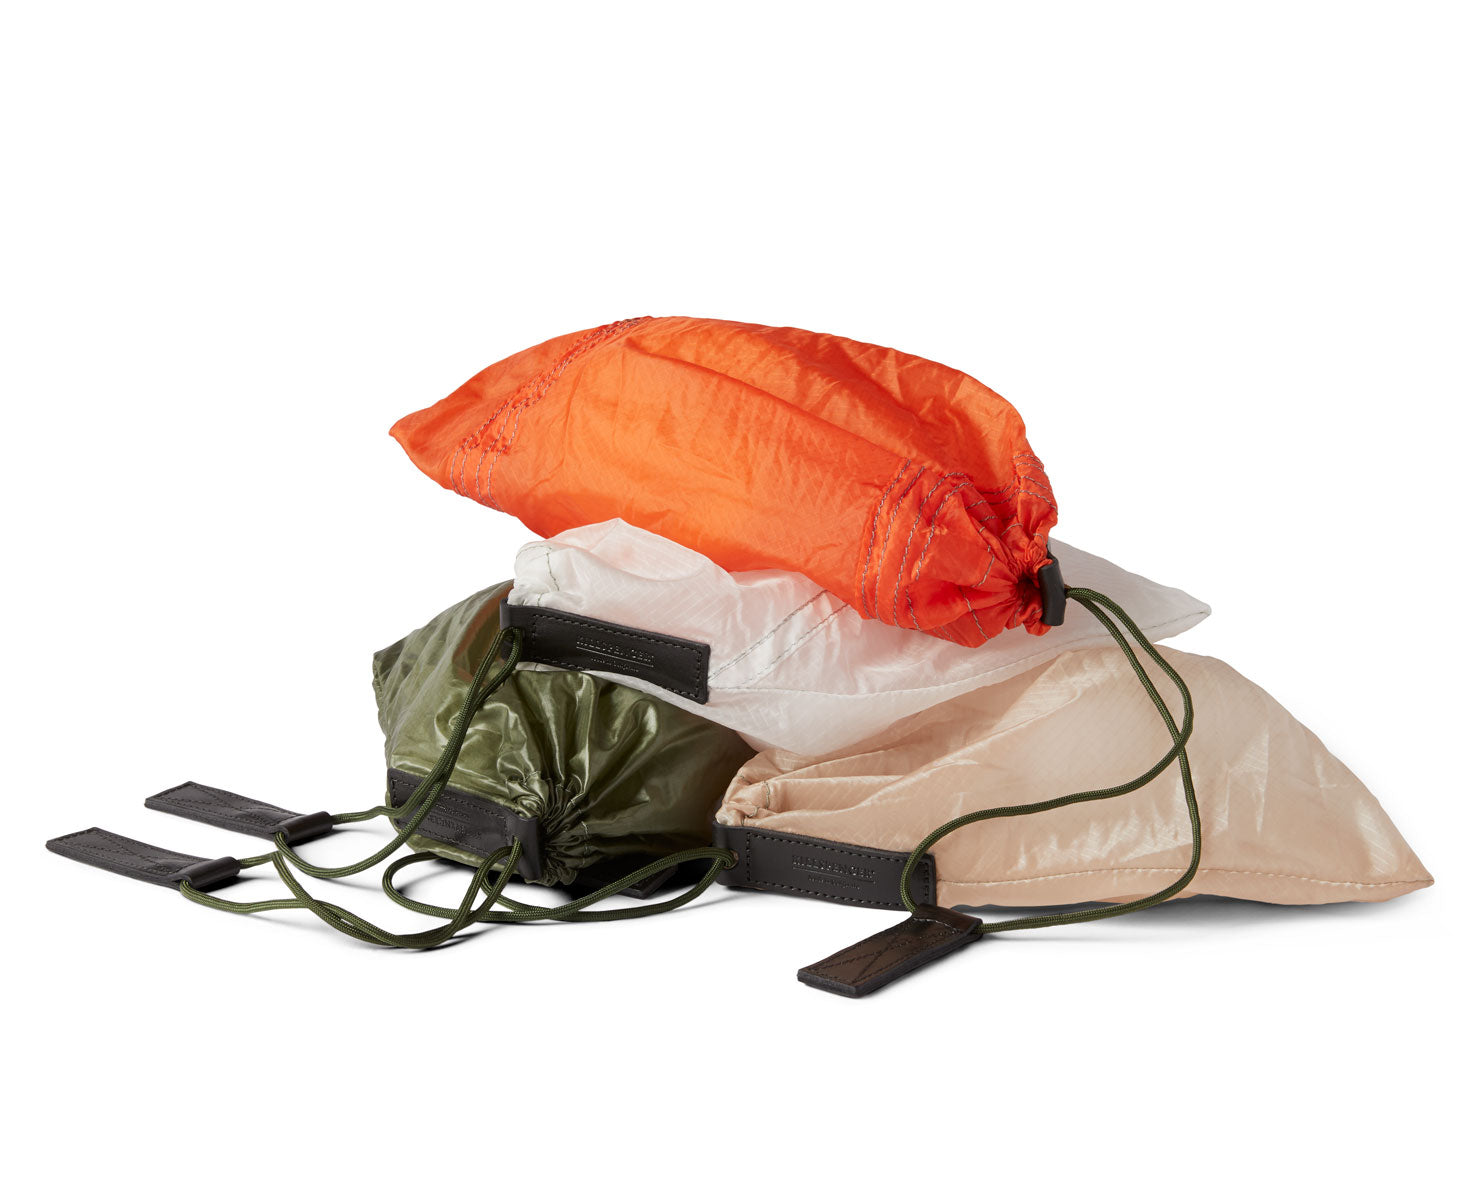 PARACHUTE BAG 2.0 - Large Accessory Bag | KILLSPENCER® - Orange Parachute